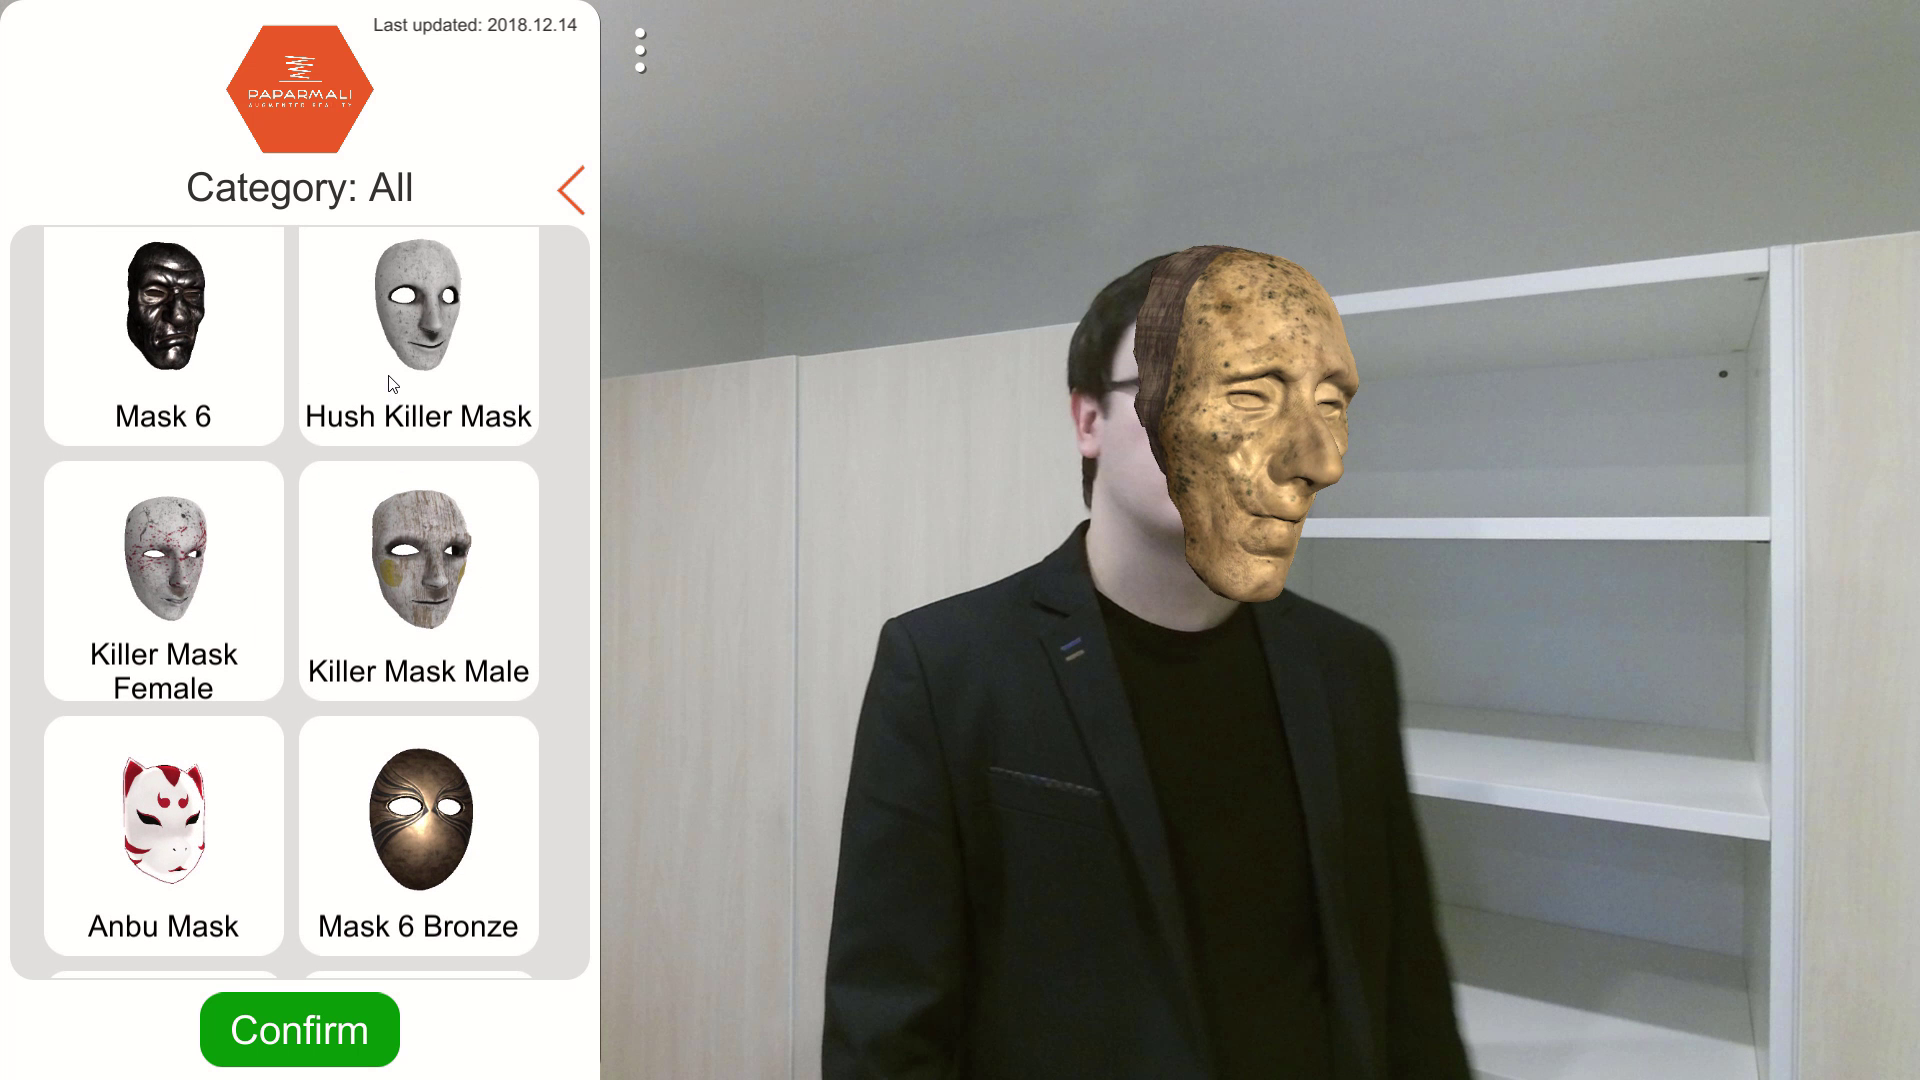 Paparmali 2 - AR Face Tracking using Kinect 2